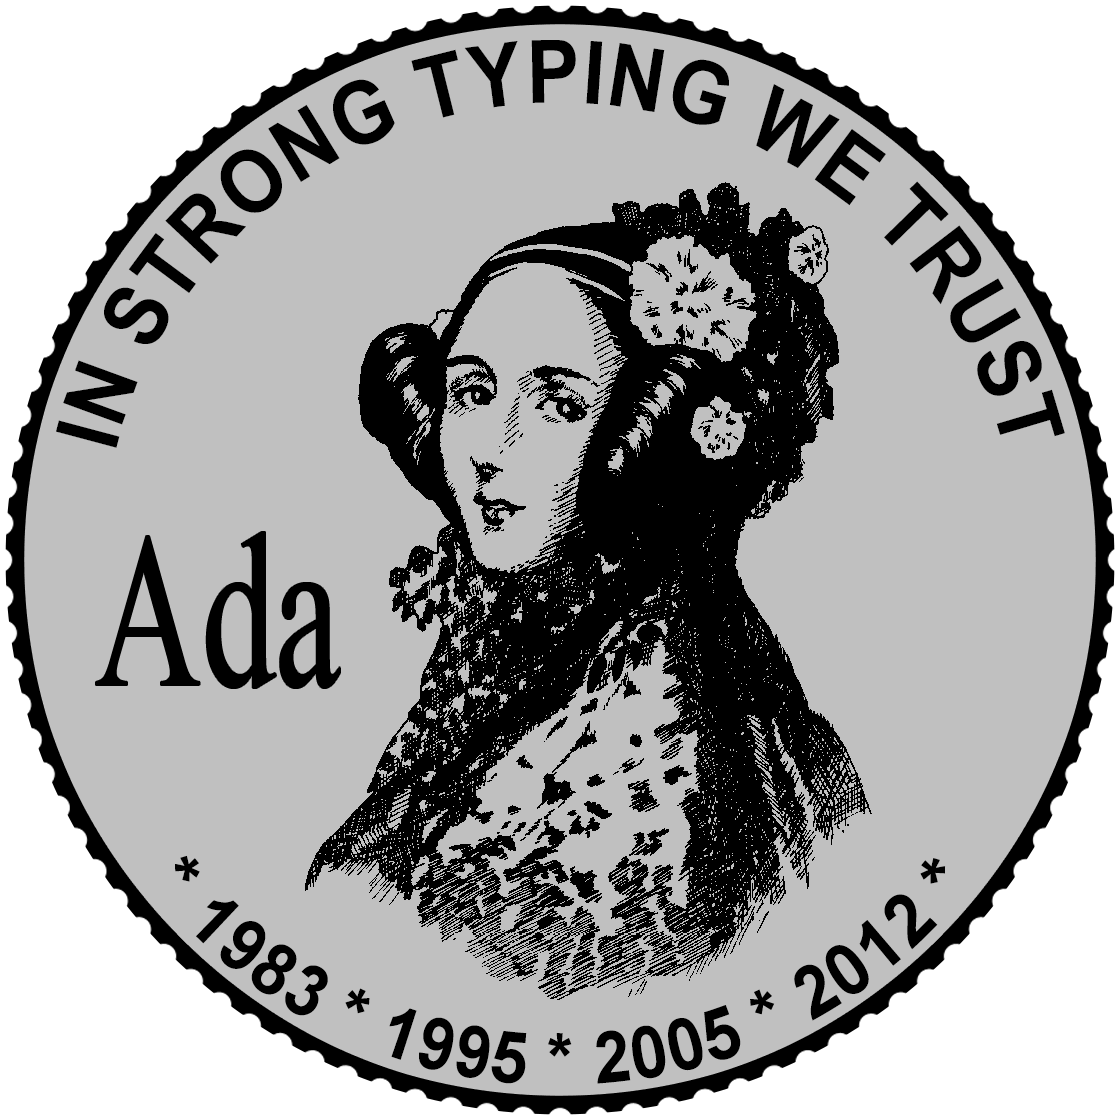 Ada In Strong Typing We Trust